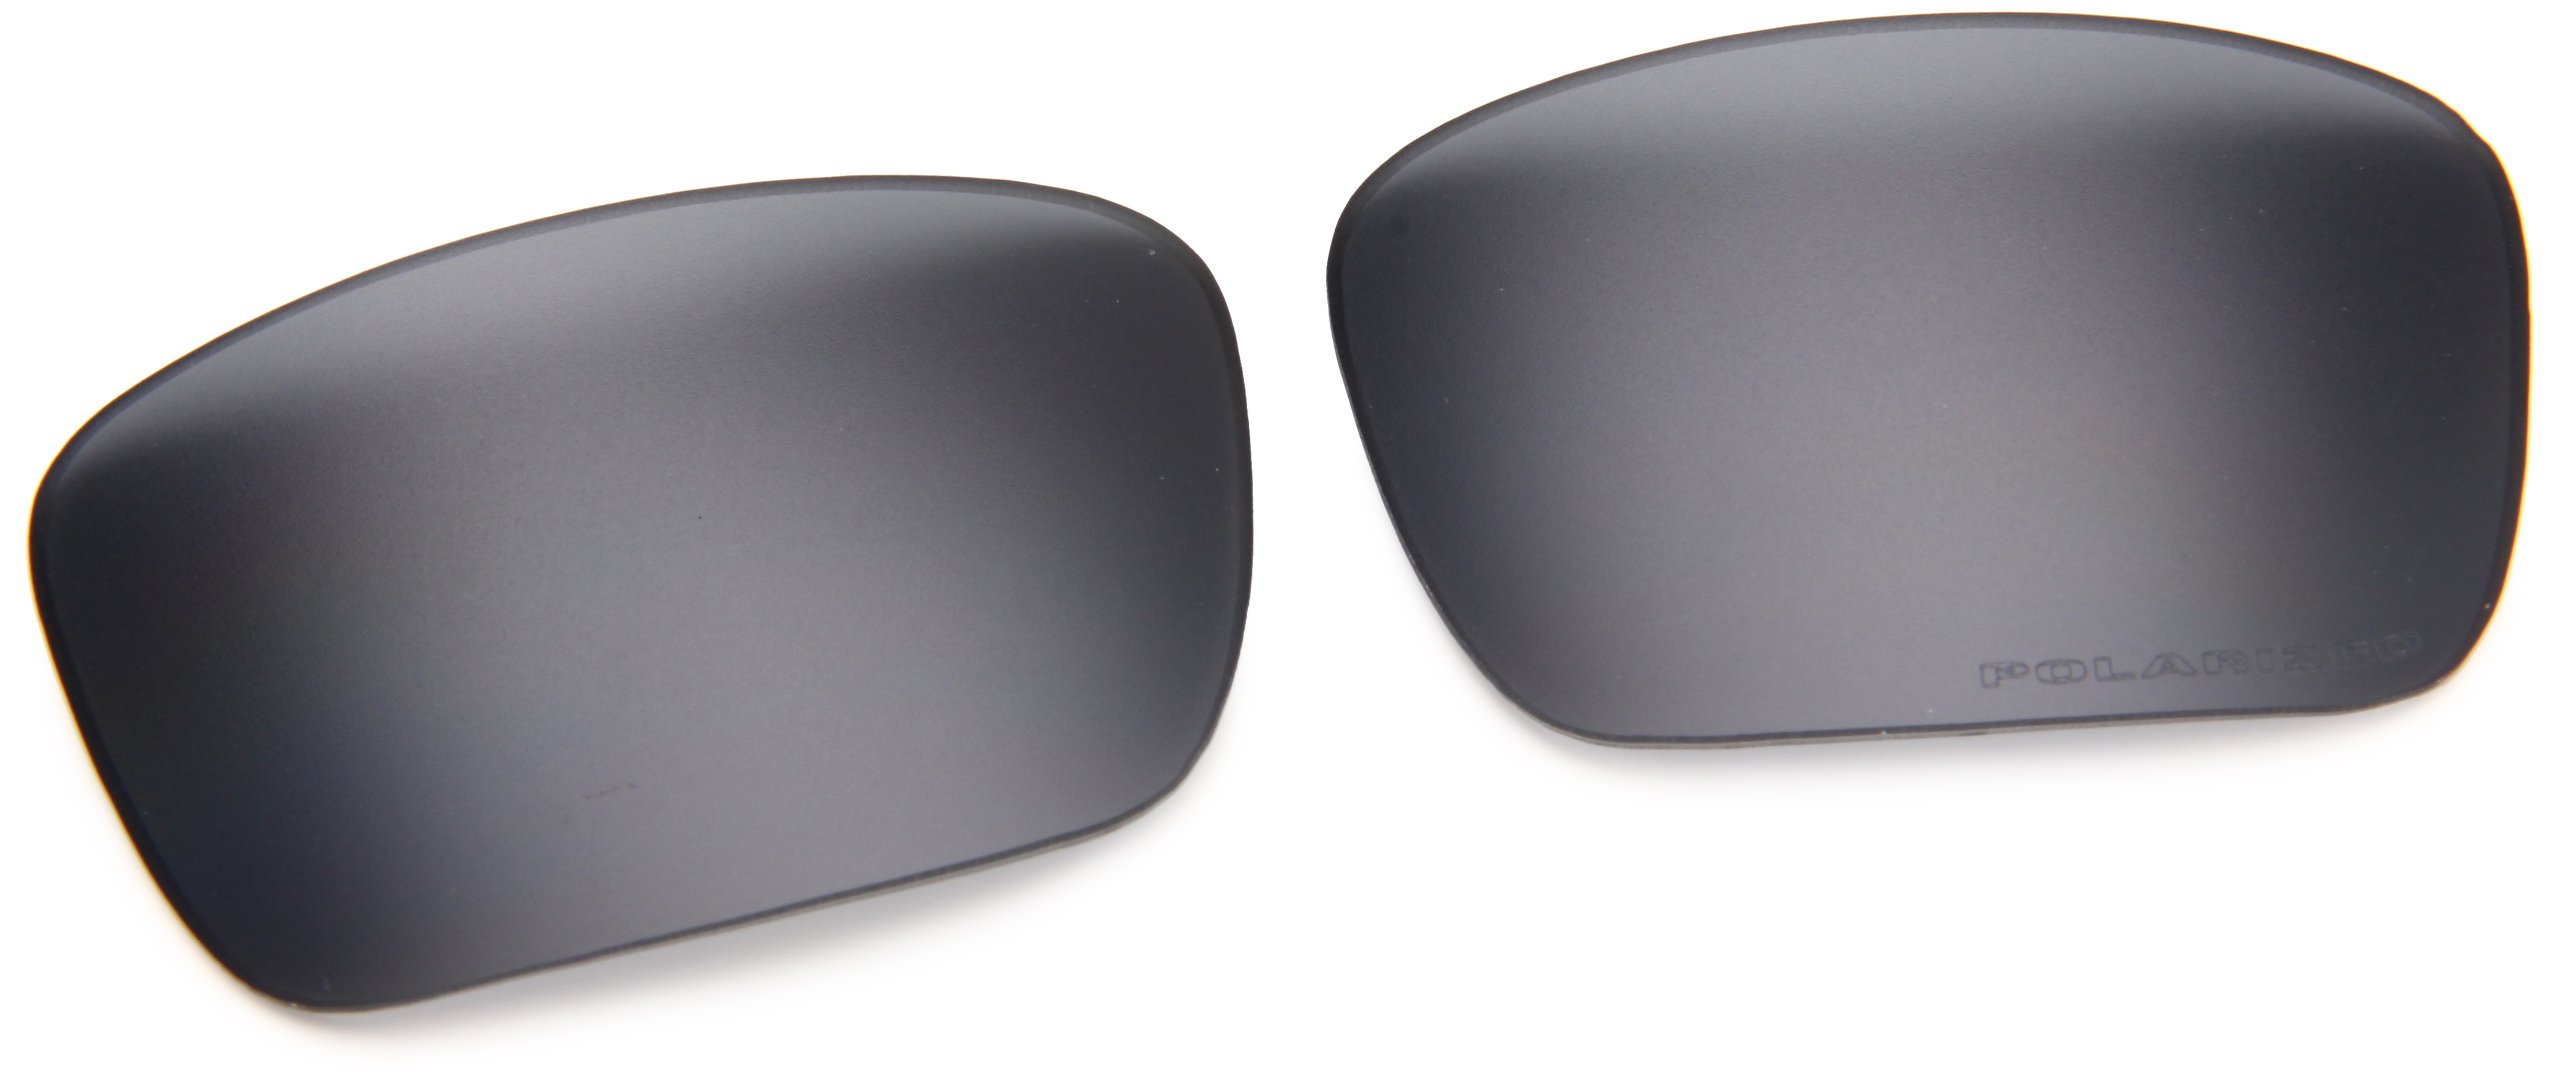 Oakley Men's Fuel Cell Sunglasses Replacement Lenses, Grey Polarized, 60 mm by Oakley